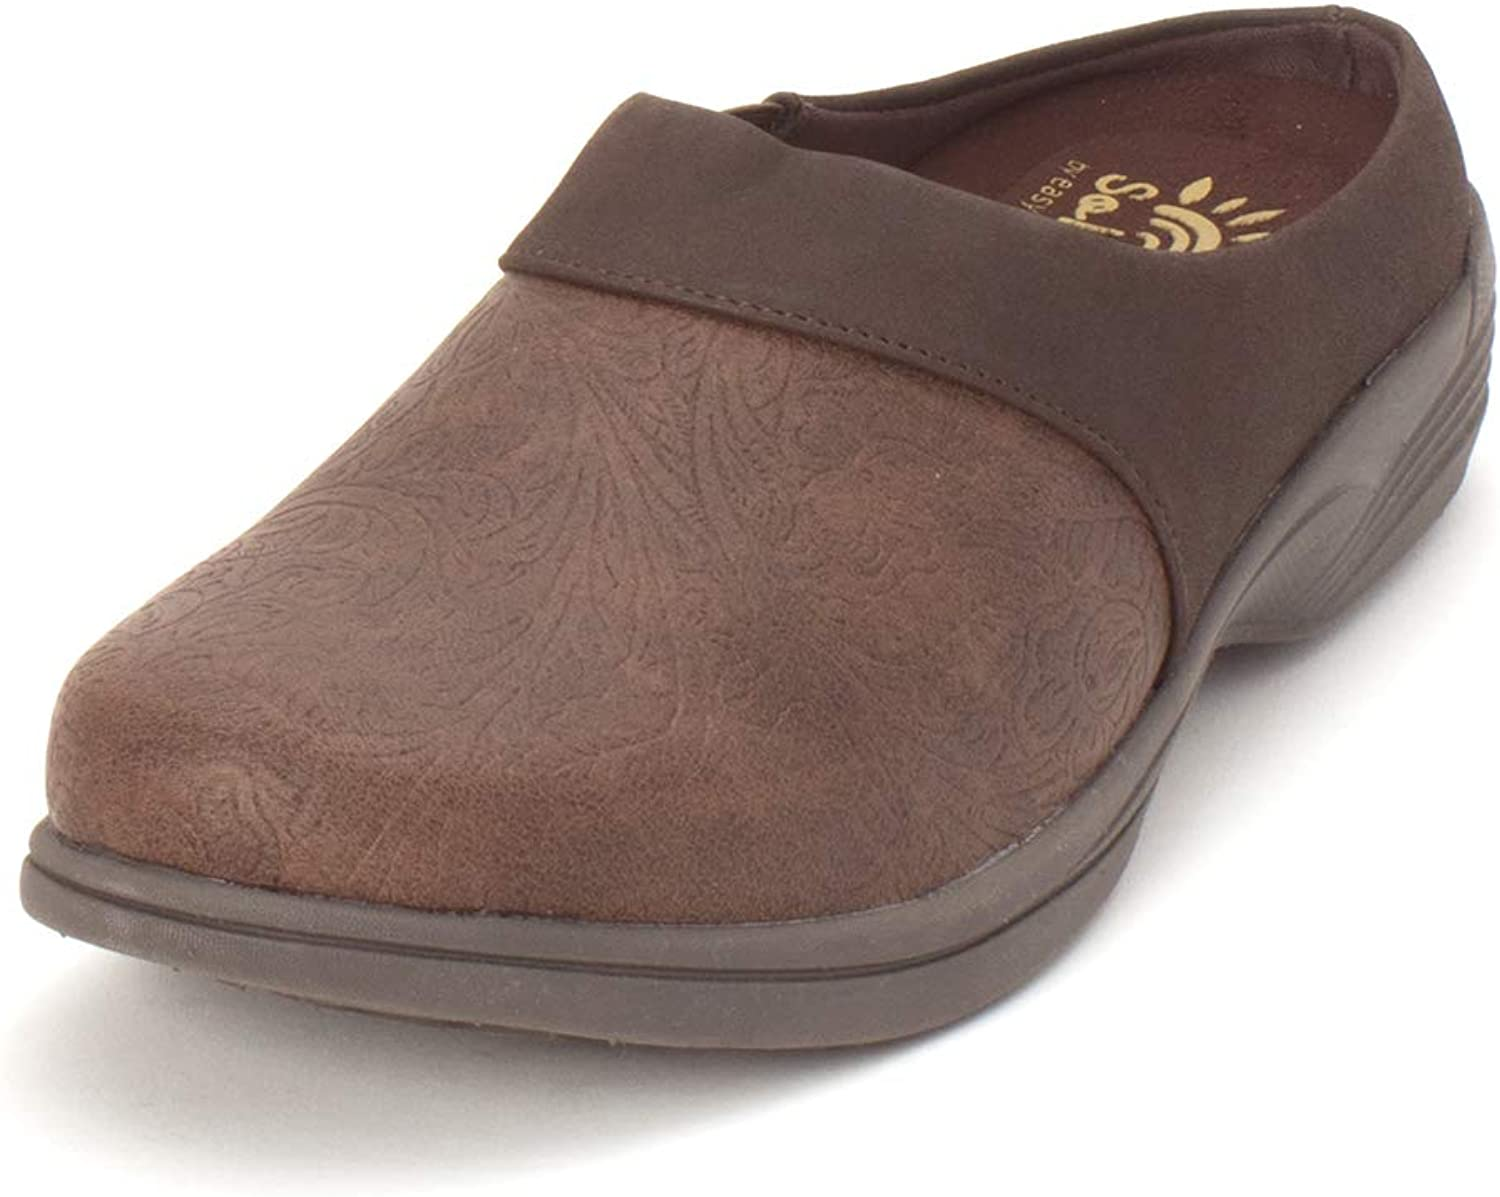 Easy Street Womens Cozy Closed Toe Clogs, Brown Floral, Size 7.5